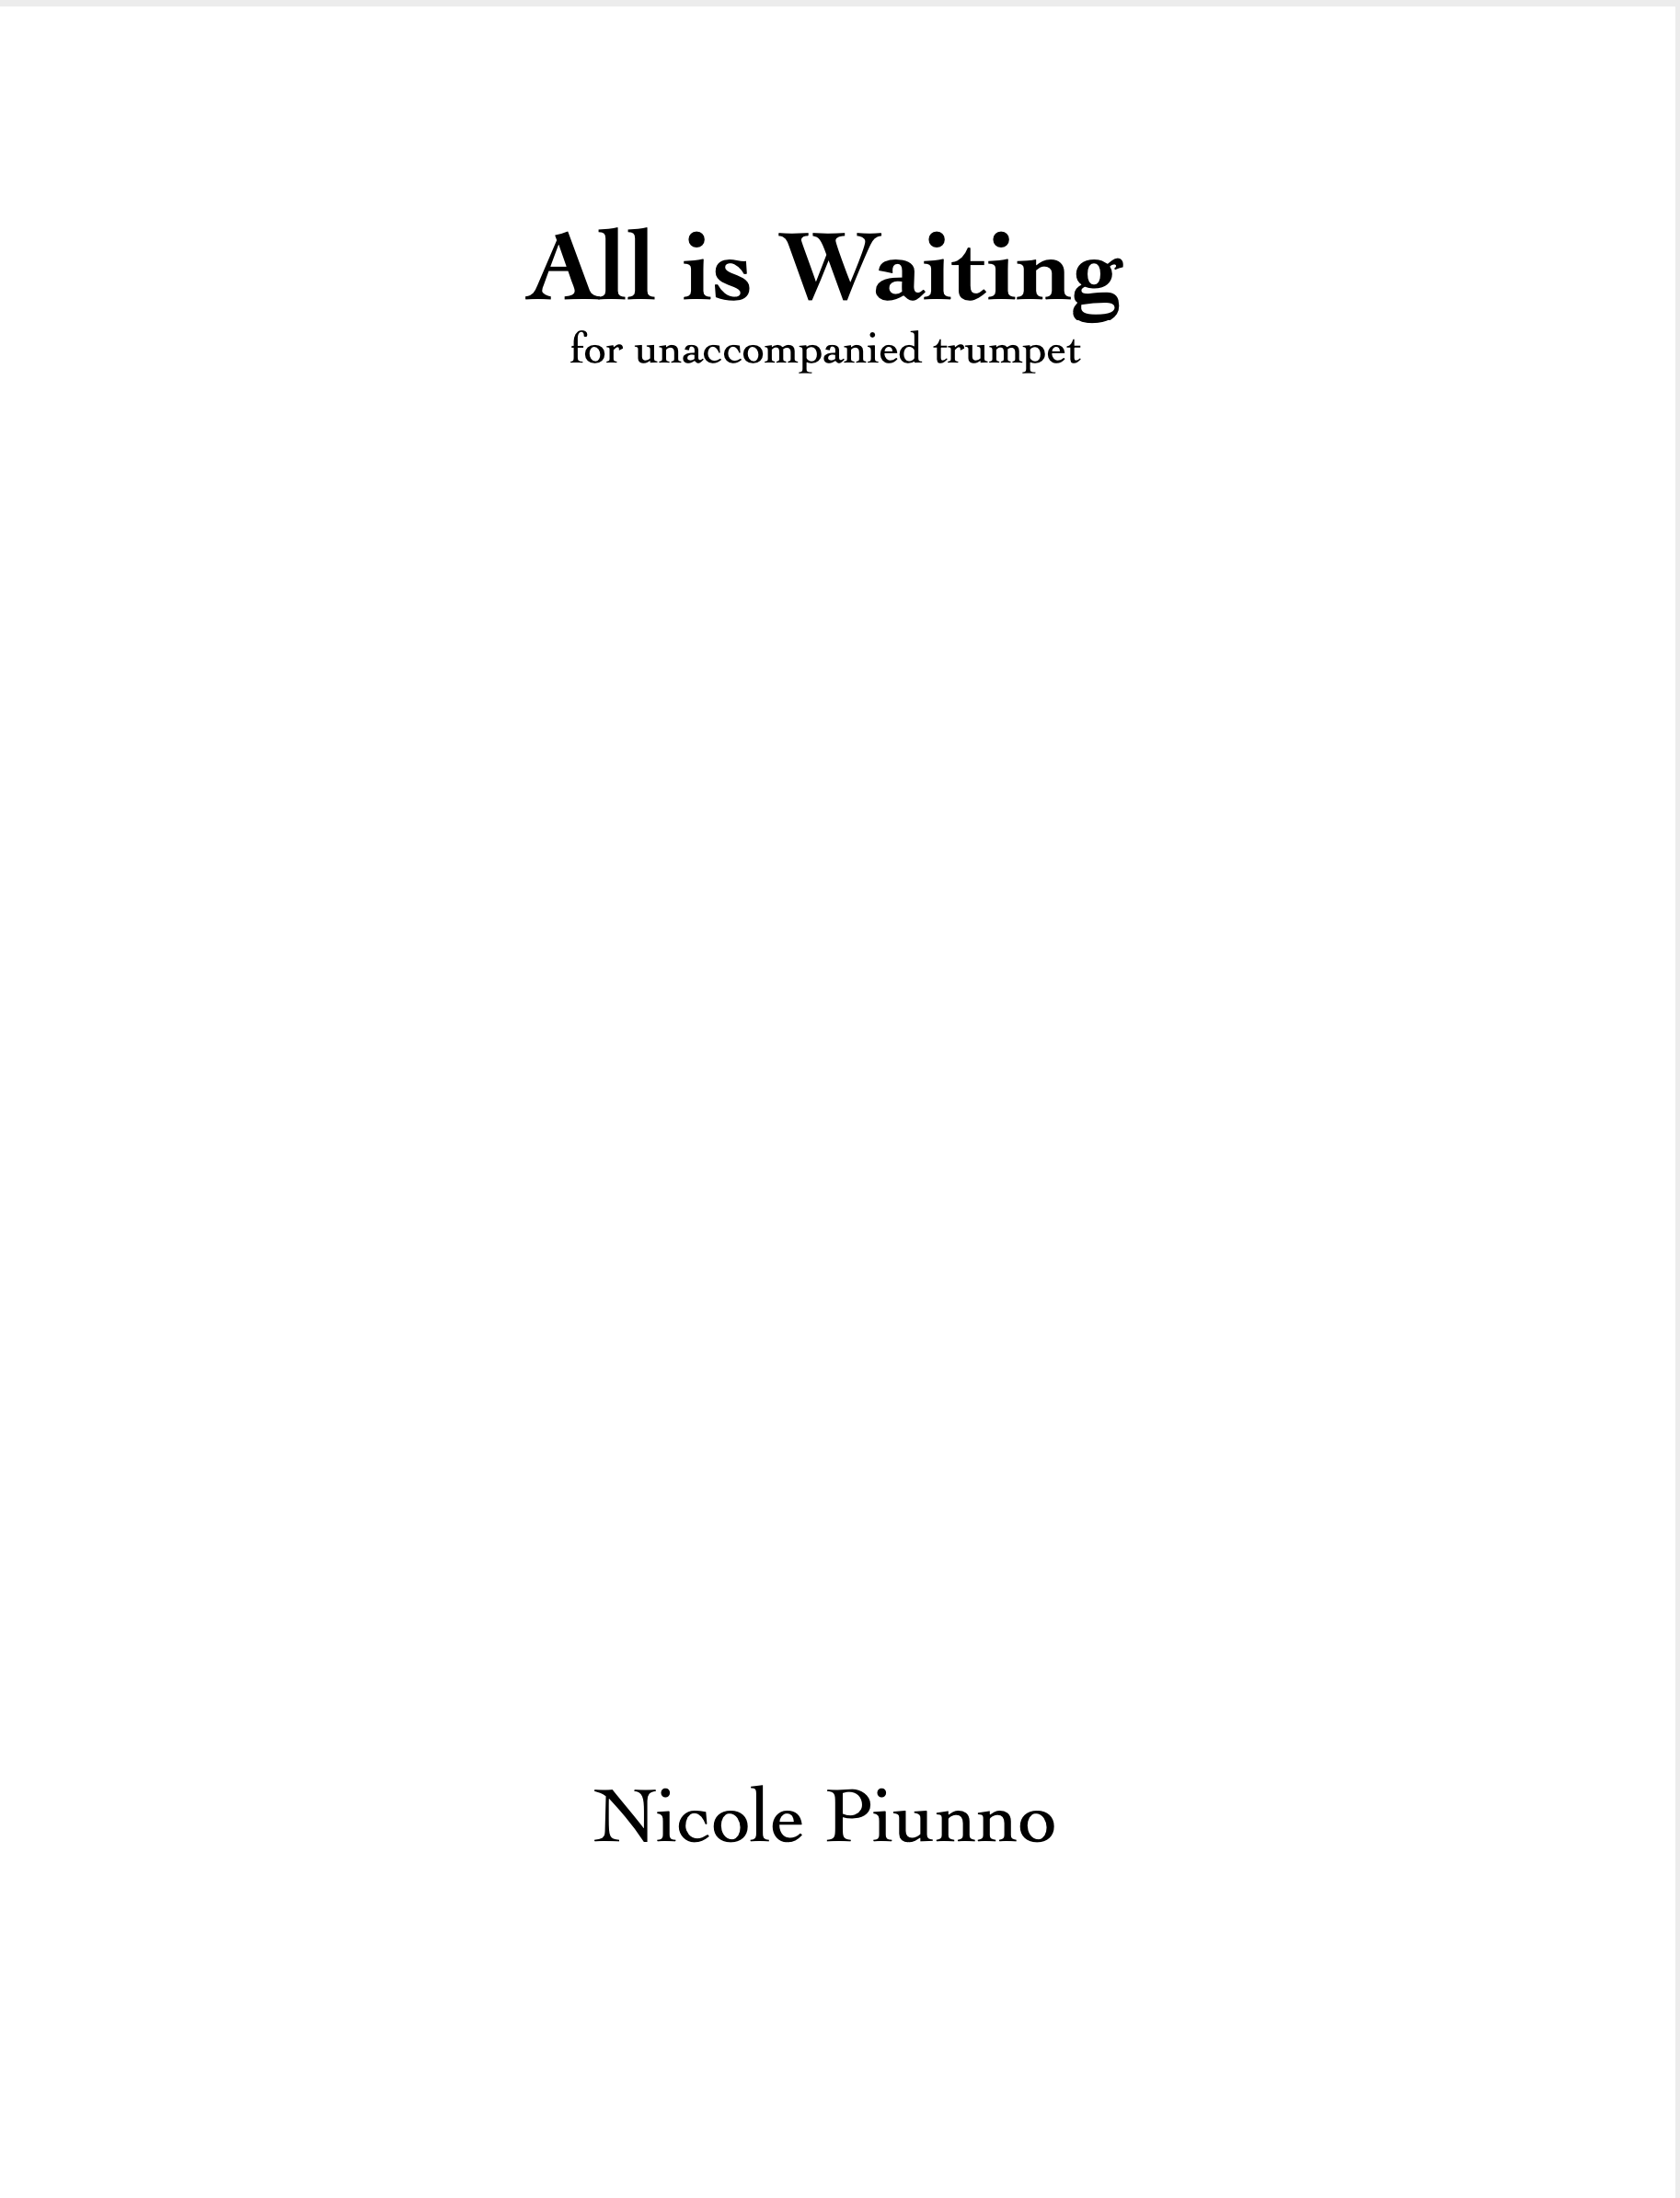 All Is Waiting by Nicole Piunno